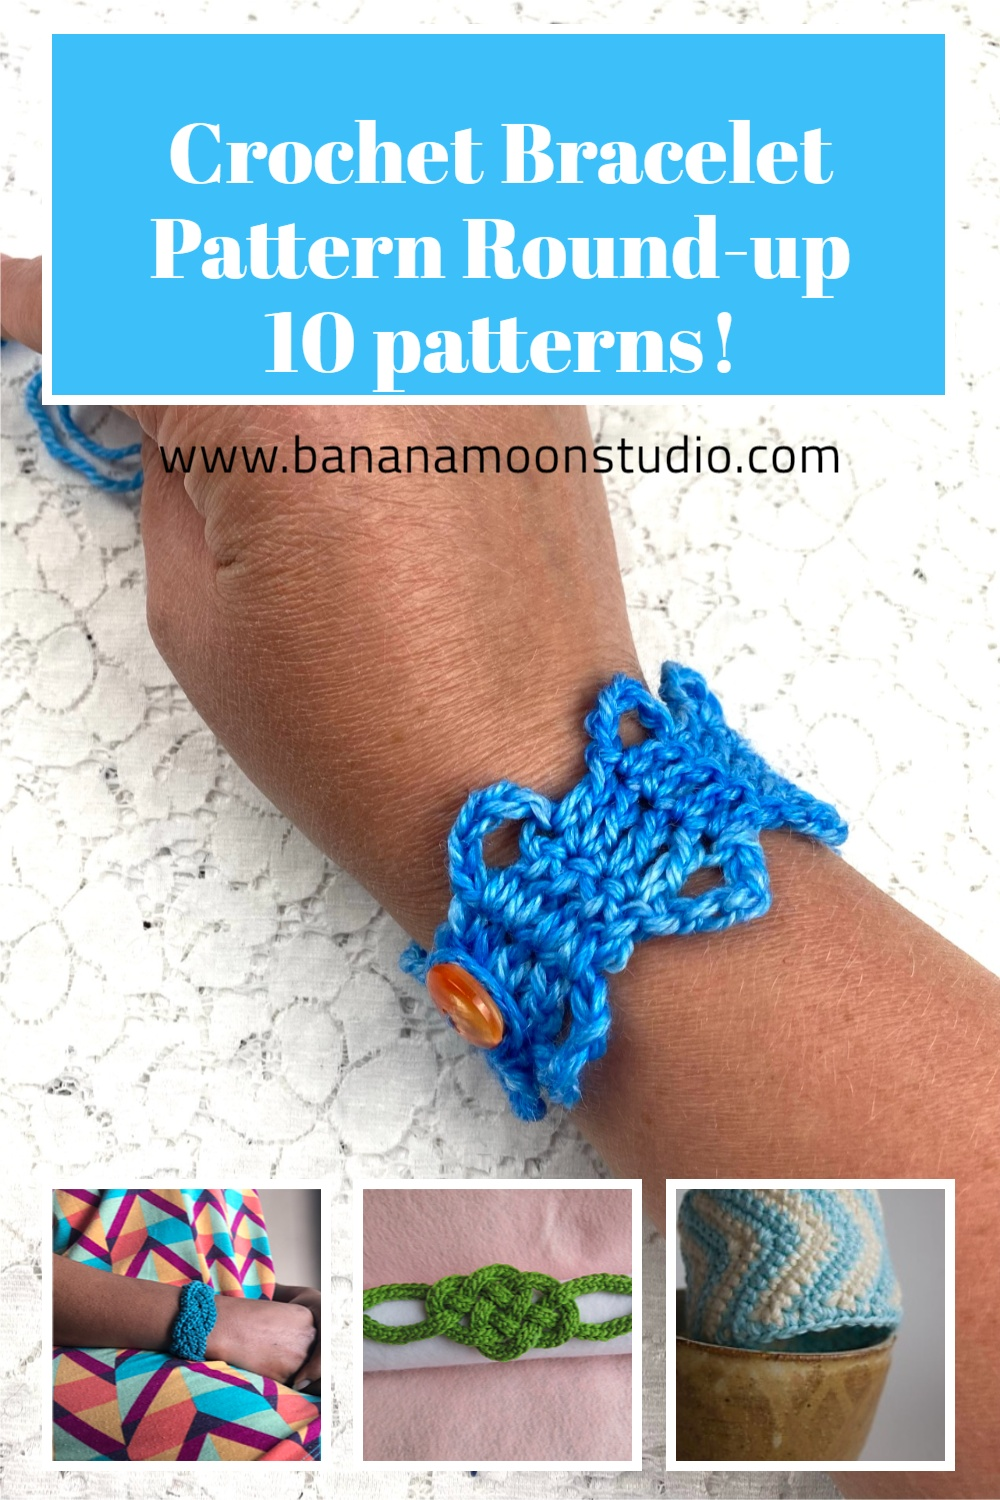 Photo collage of 4 crochet bracelets in various settings. Text reads: Crochet Bracelet Pattern Round-up 10 patterns! www.bananamoonstudio.com.